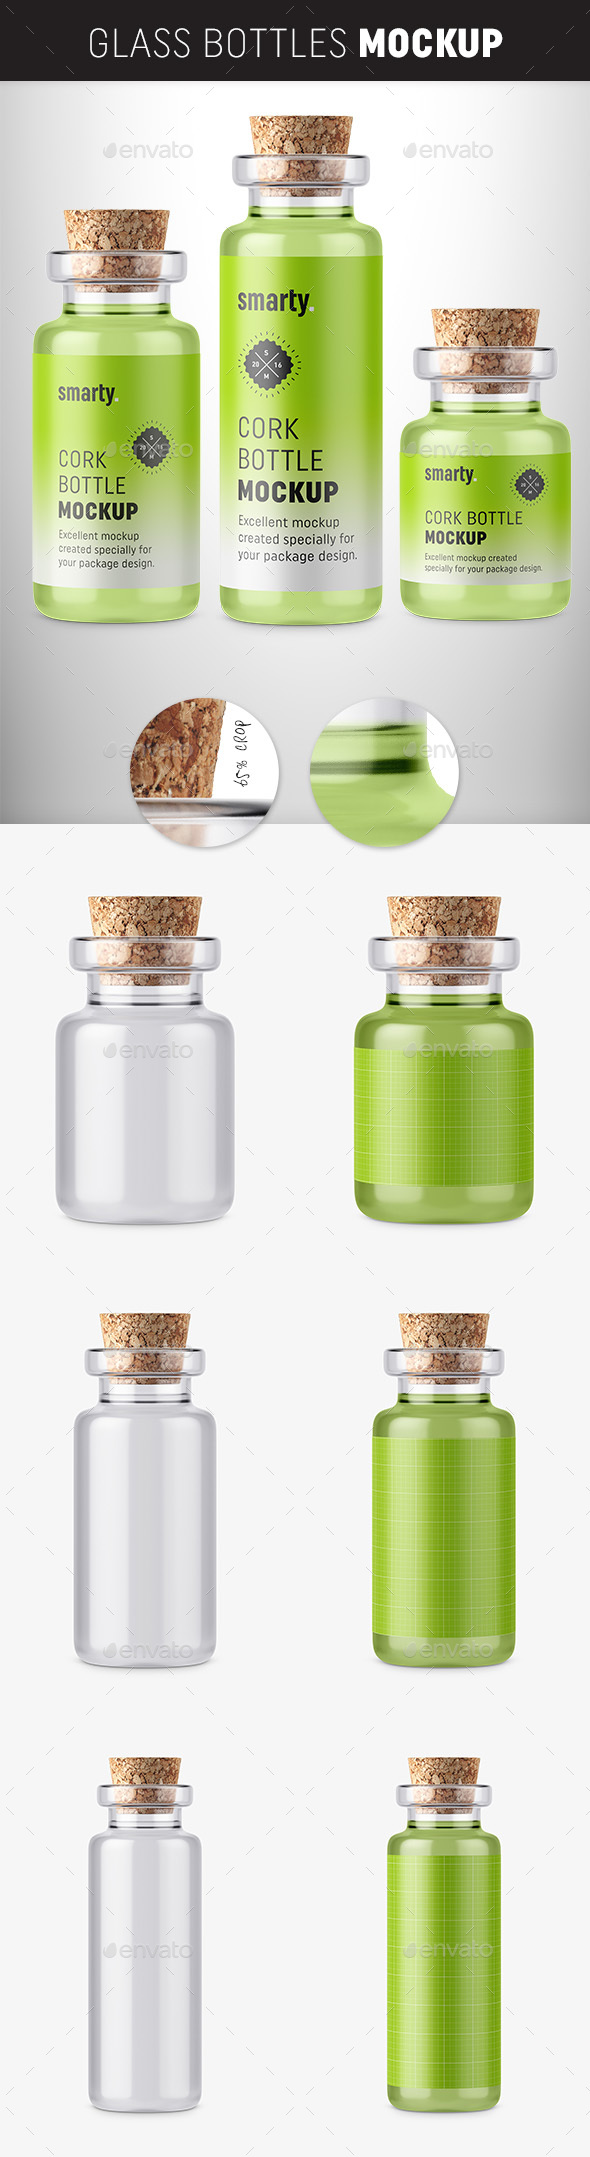 Glass Bottle with Cork Mockup